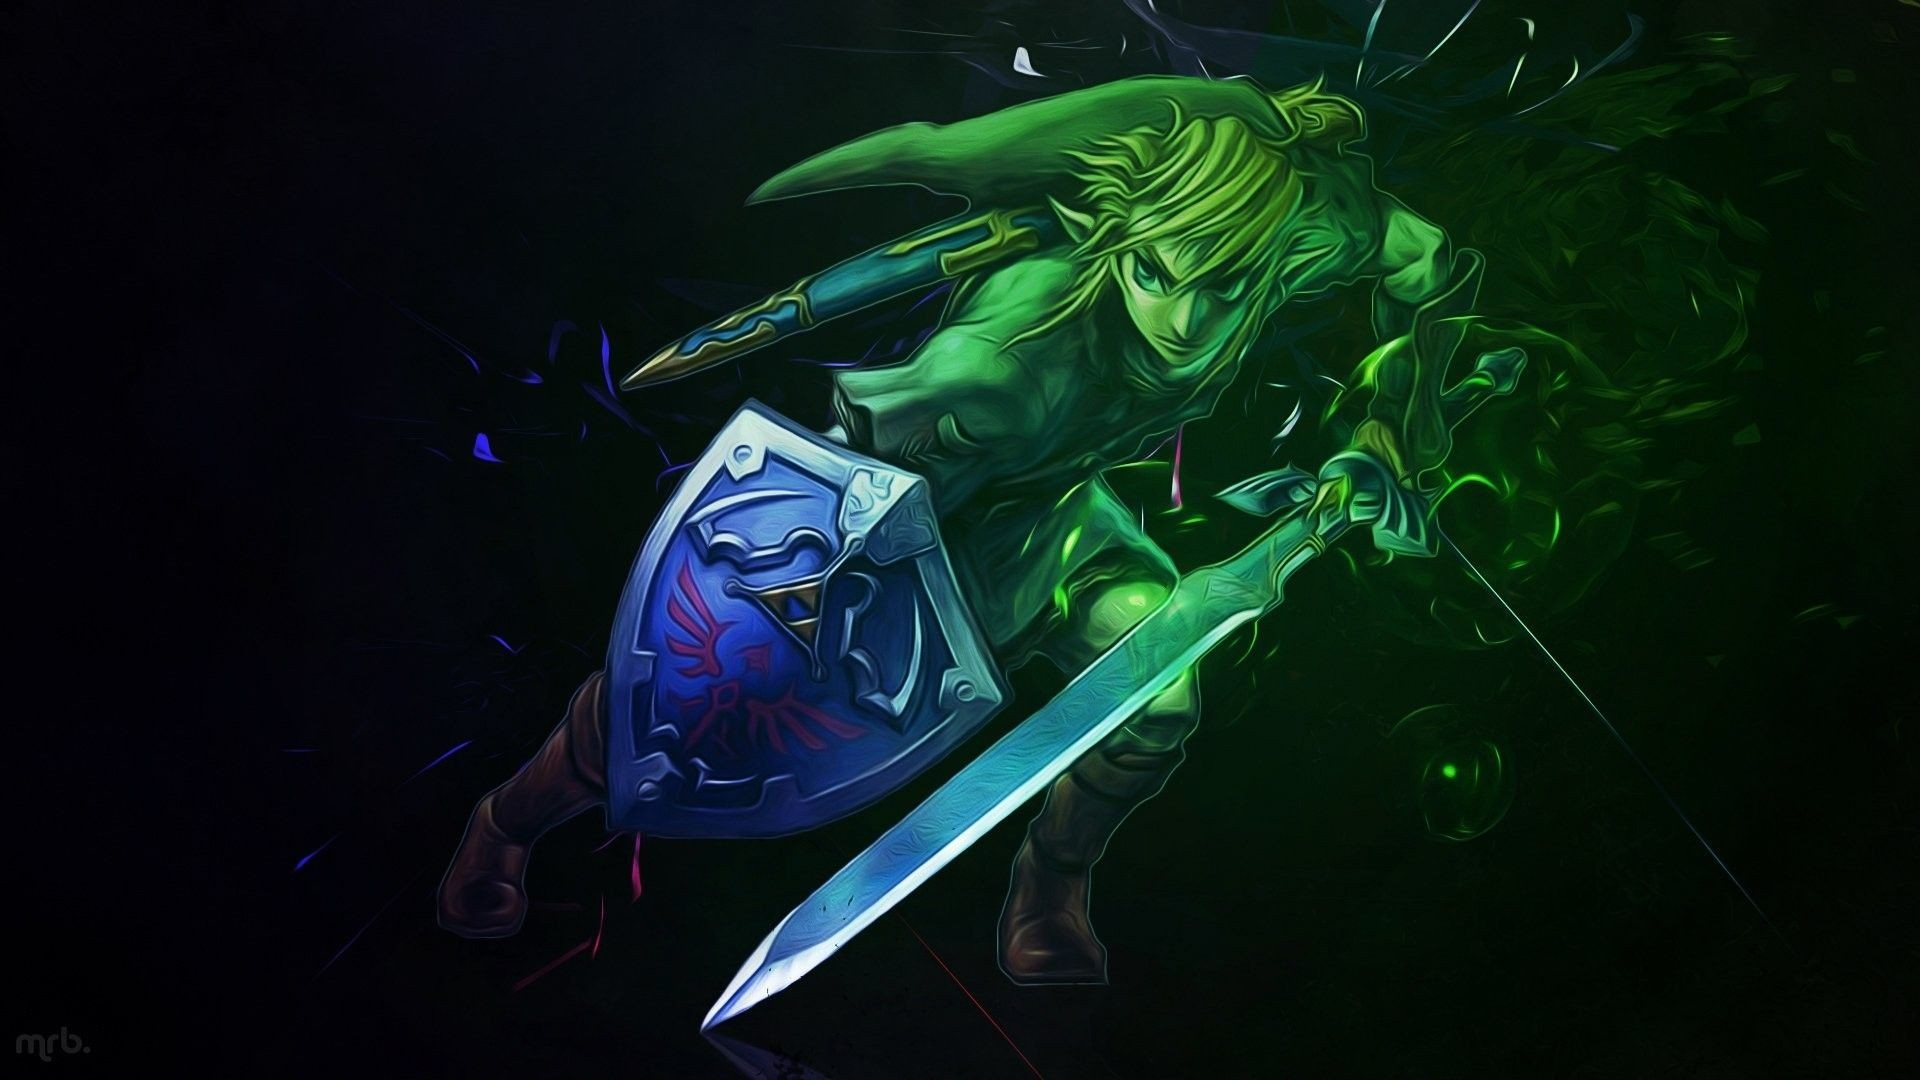 Res: 1920x1080, More of Zelda Live Wallpaper Collections